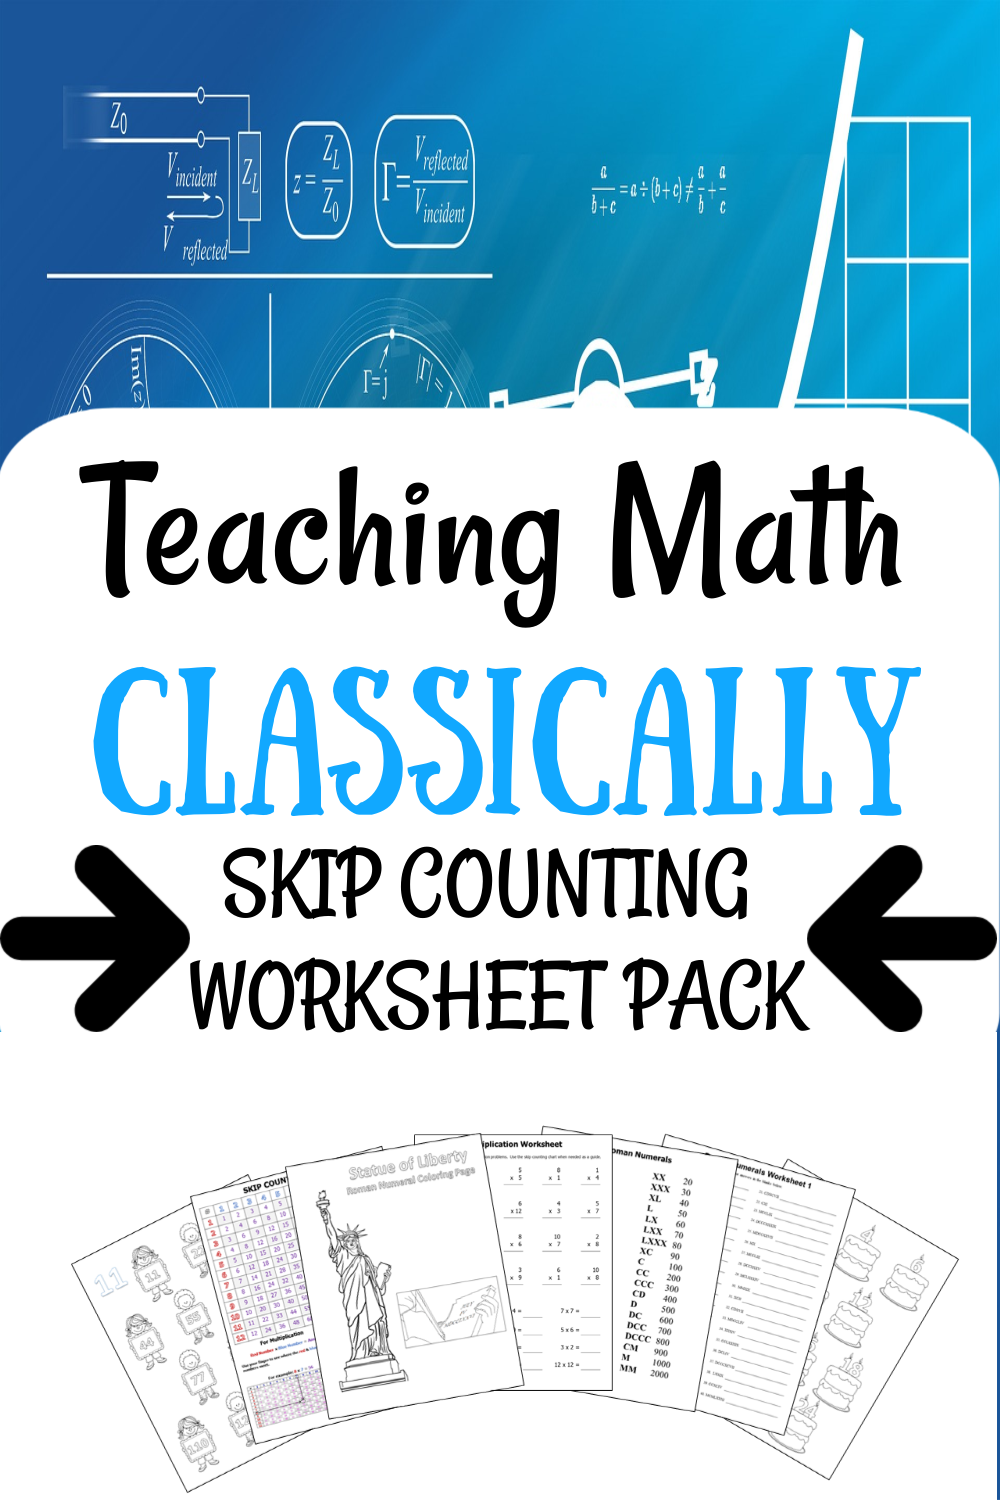 Classical Math Worksheets How To Memorize Things Math Facts Math [ 1500 x 1000 Pixel ]